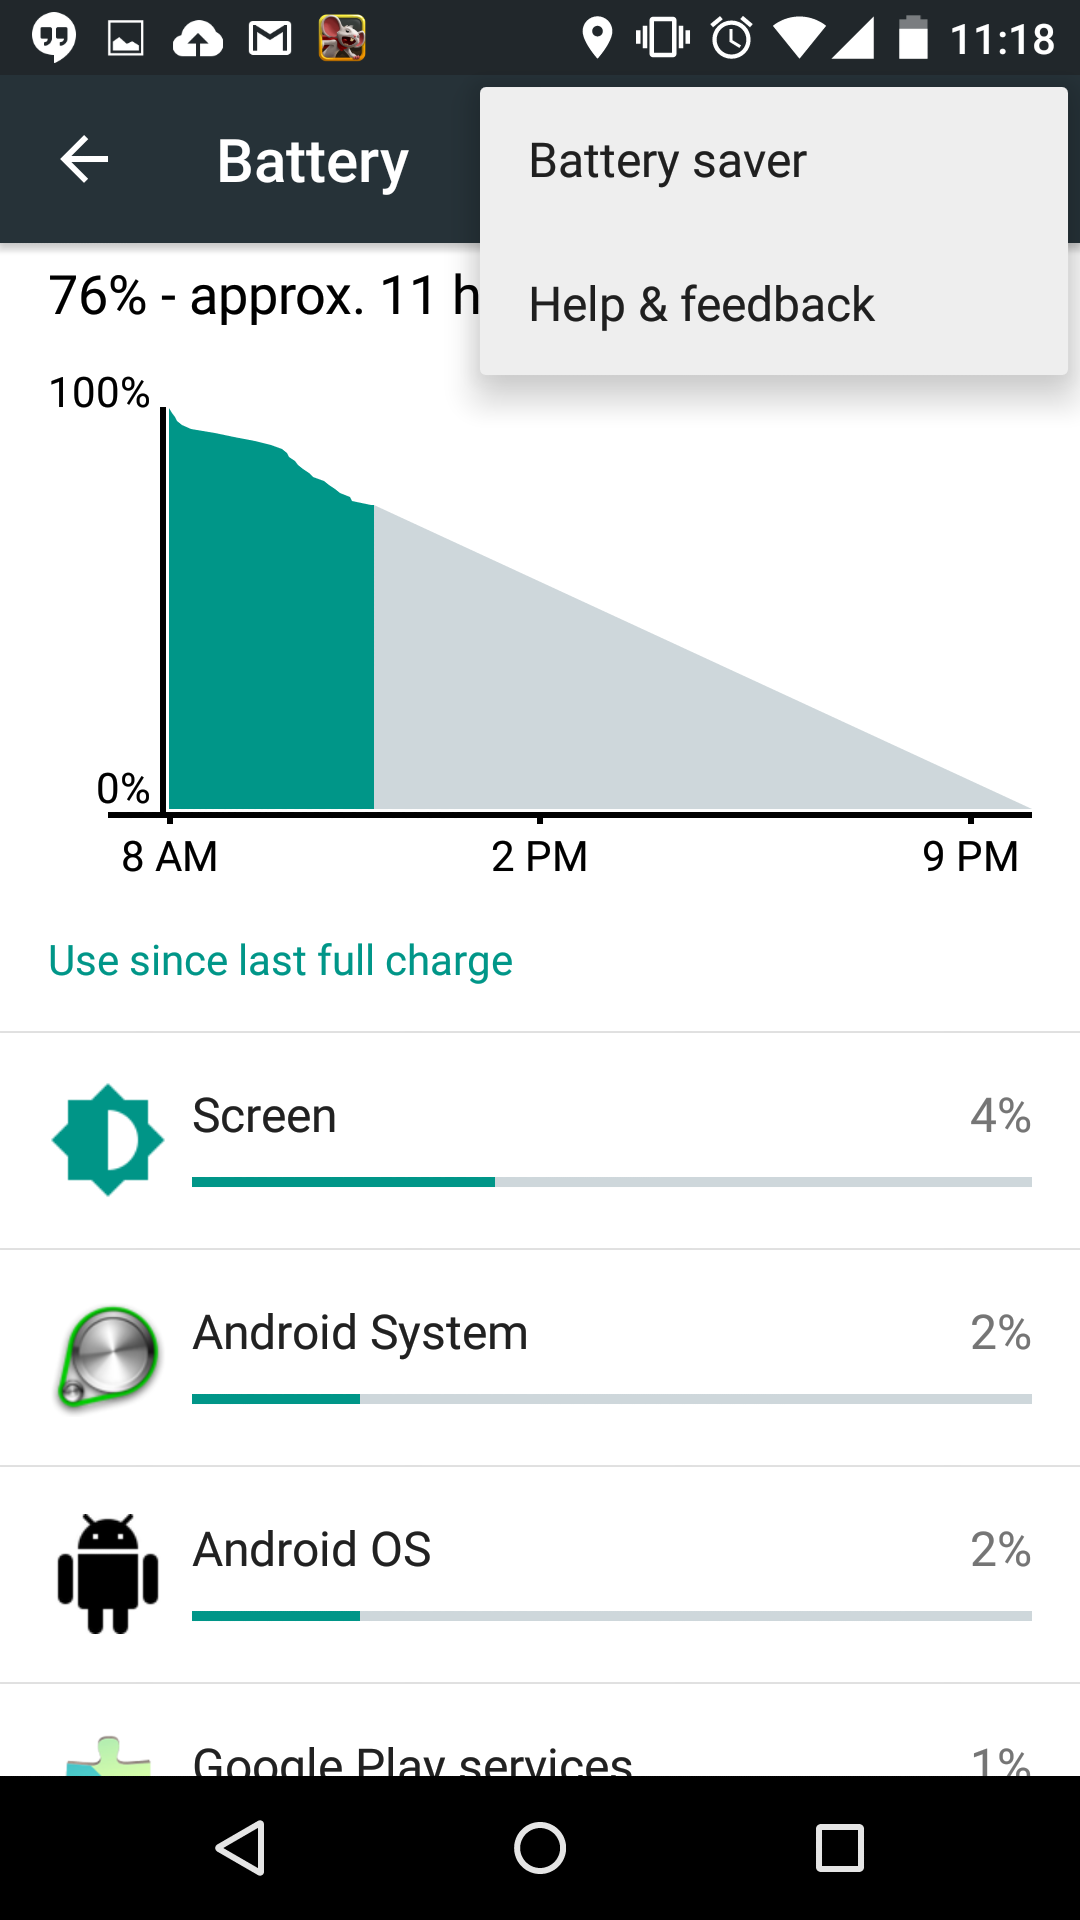 10 Tips And Tricks For Getting Smartphone Battery Life last longer